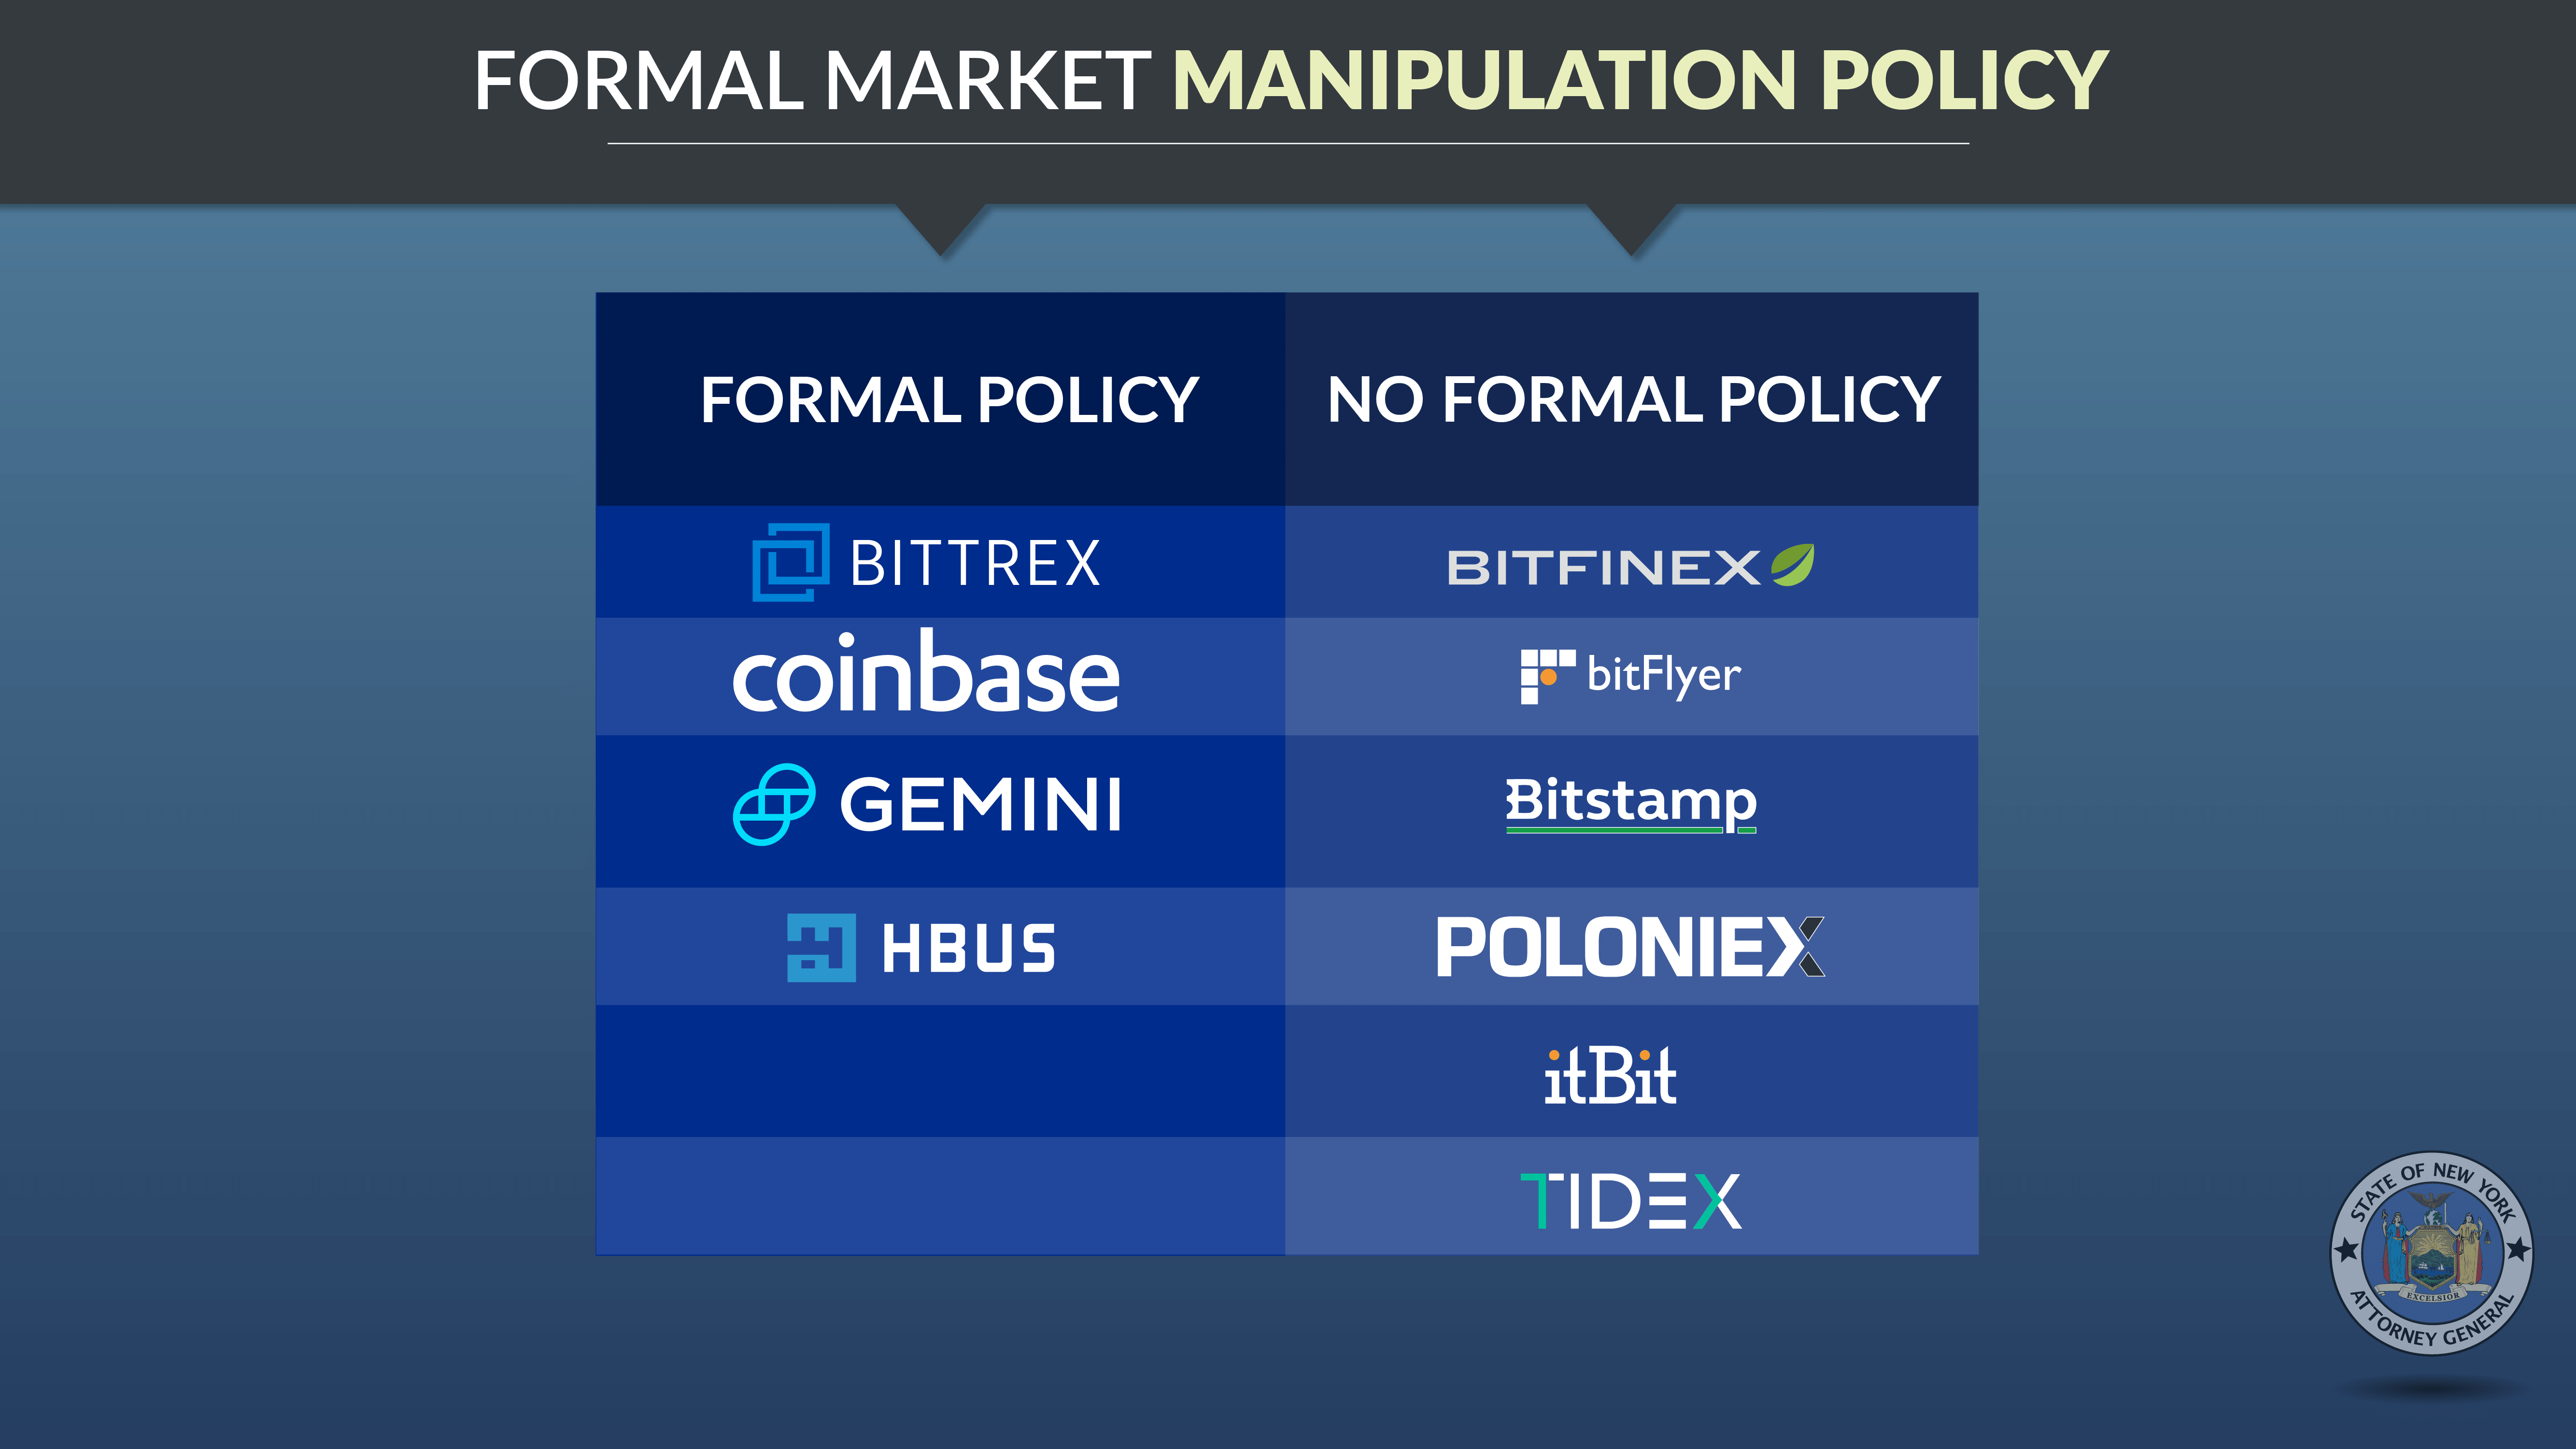 Formal Market Manipulation Policy